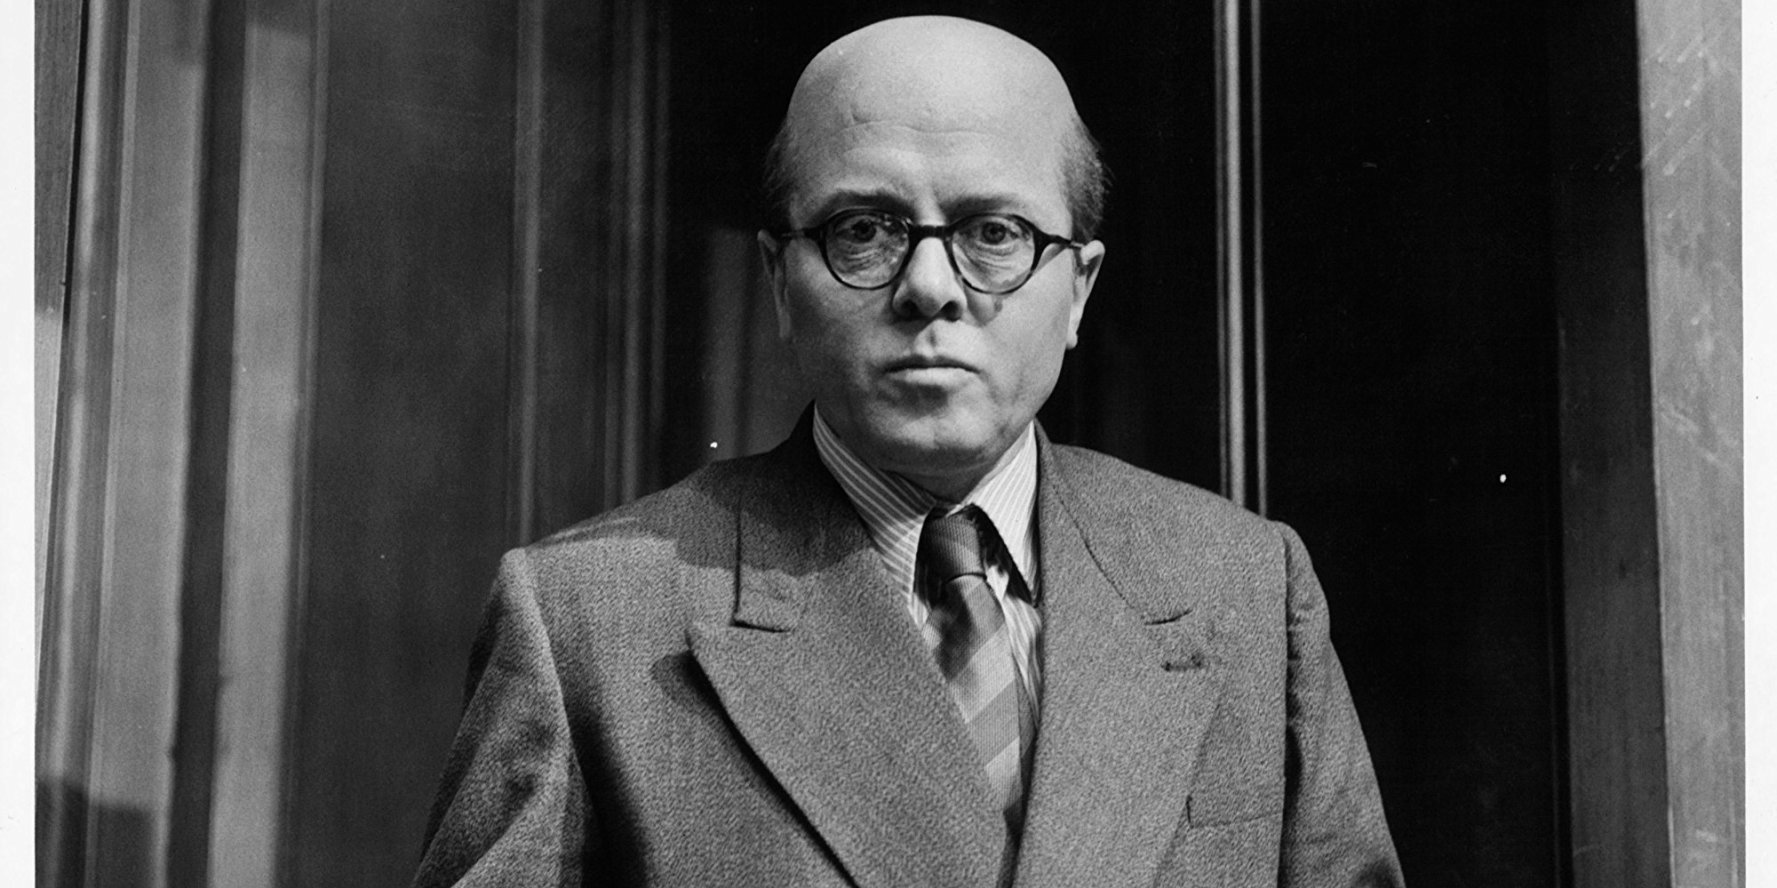 Richard Attenborough as serial killer John Reginald Christie in 10 Rillington Place (1971)